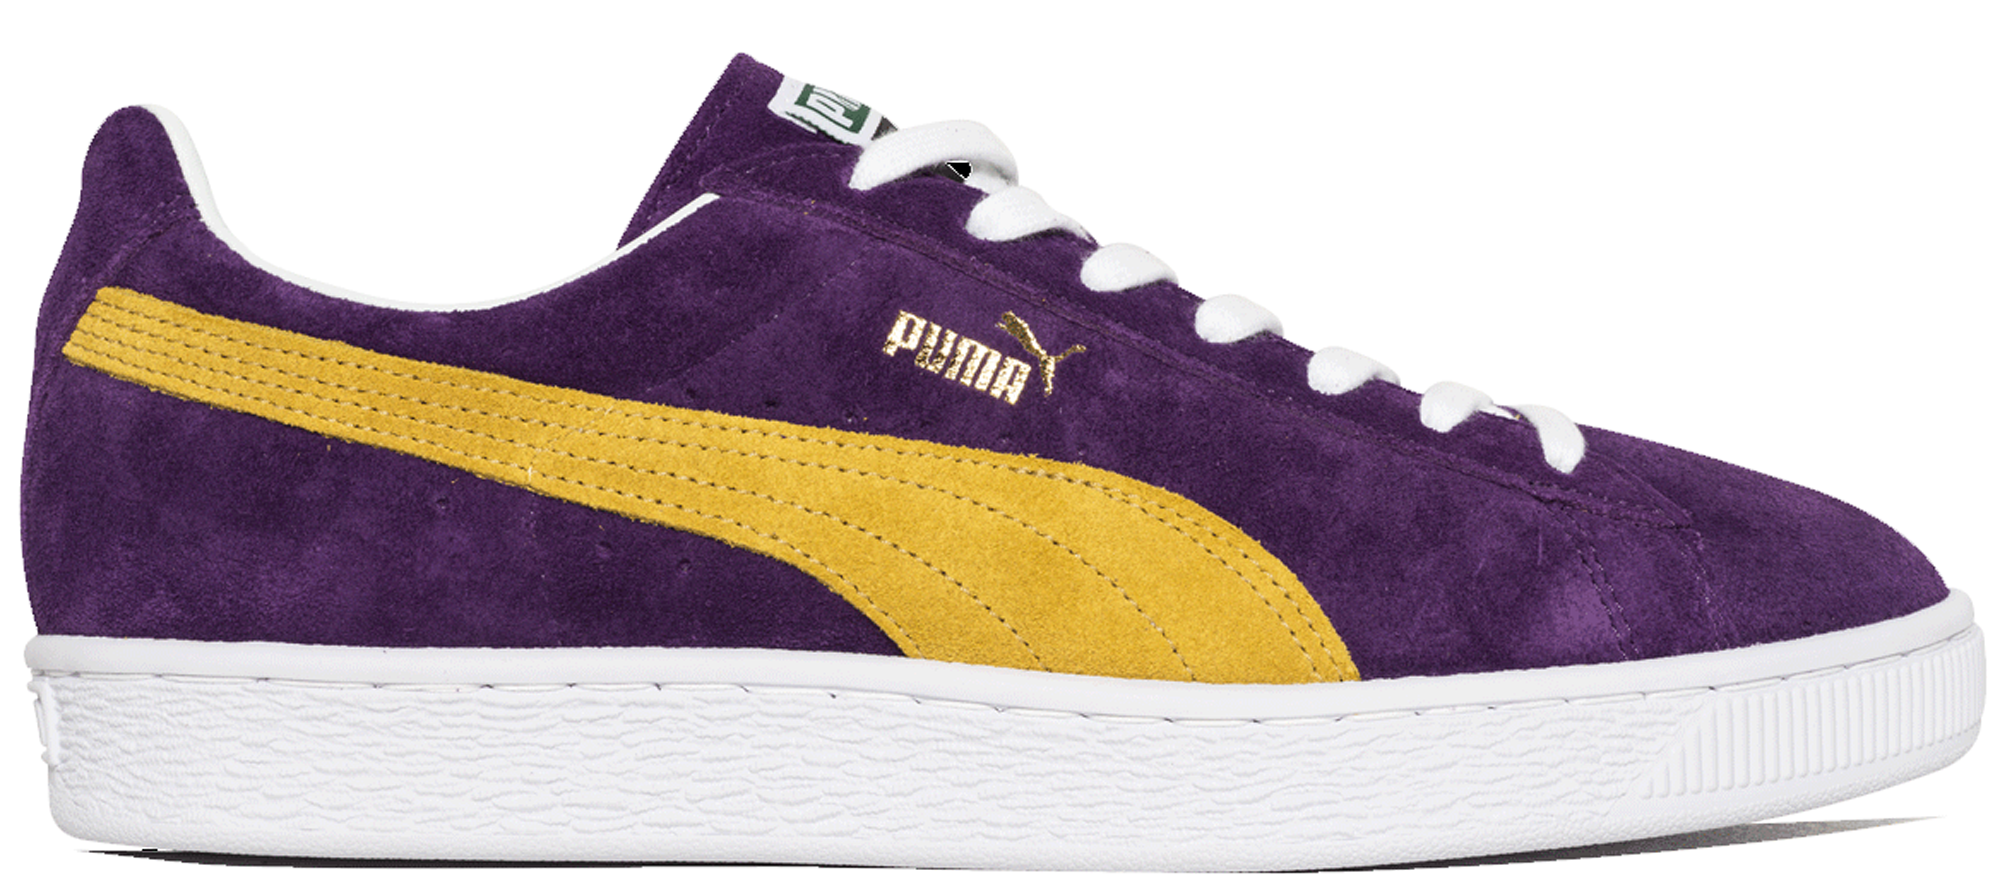 Puma Suede Classic Collectors Lakers